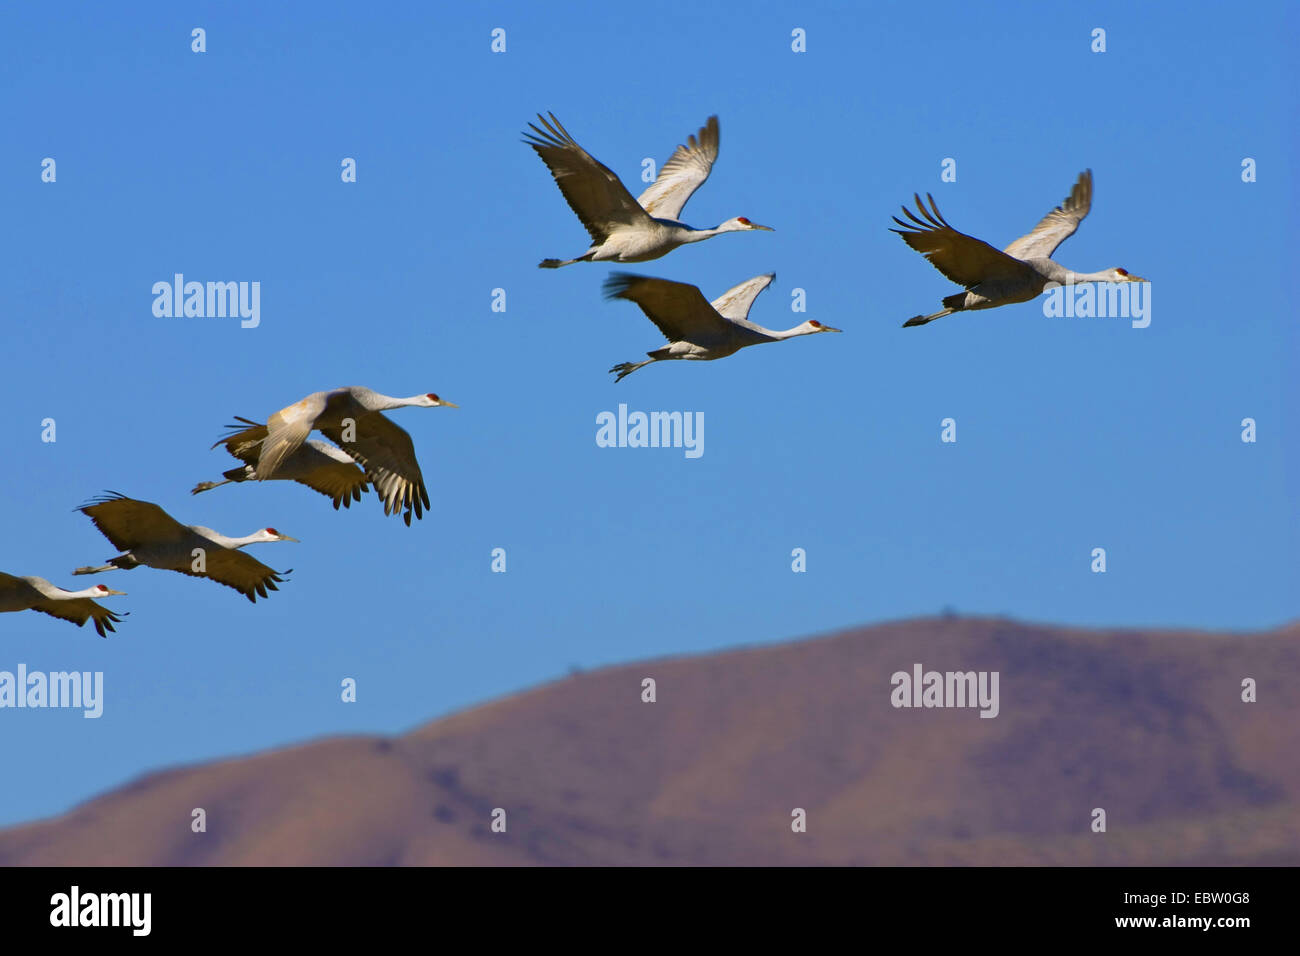 sandhill crane (Grus canadensis), Sandhill Cranes in flight, USA, New Mexico, Bosque del Apache Wildlife Refuge - Stock Image